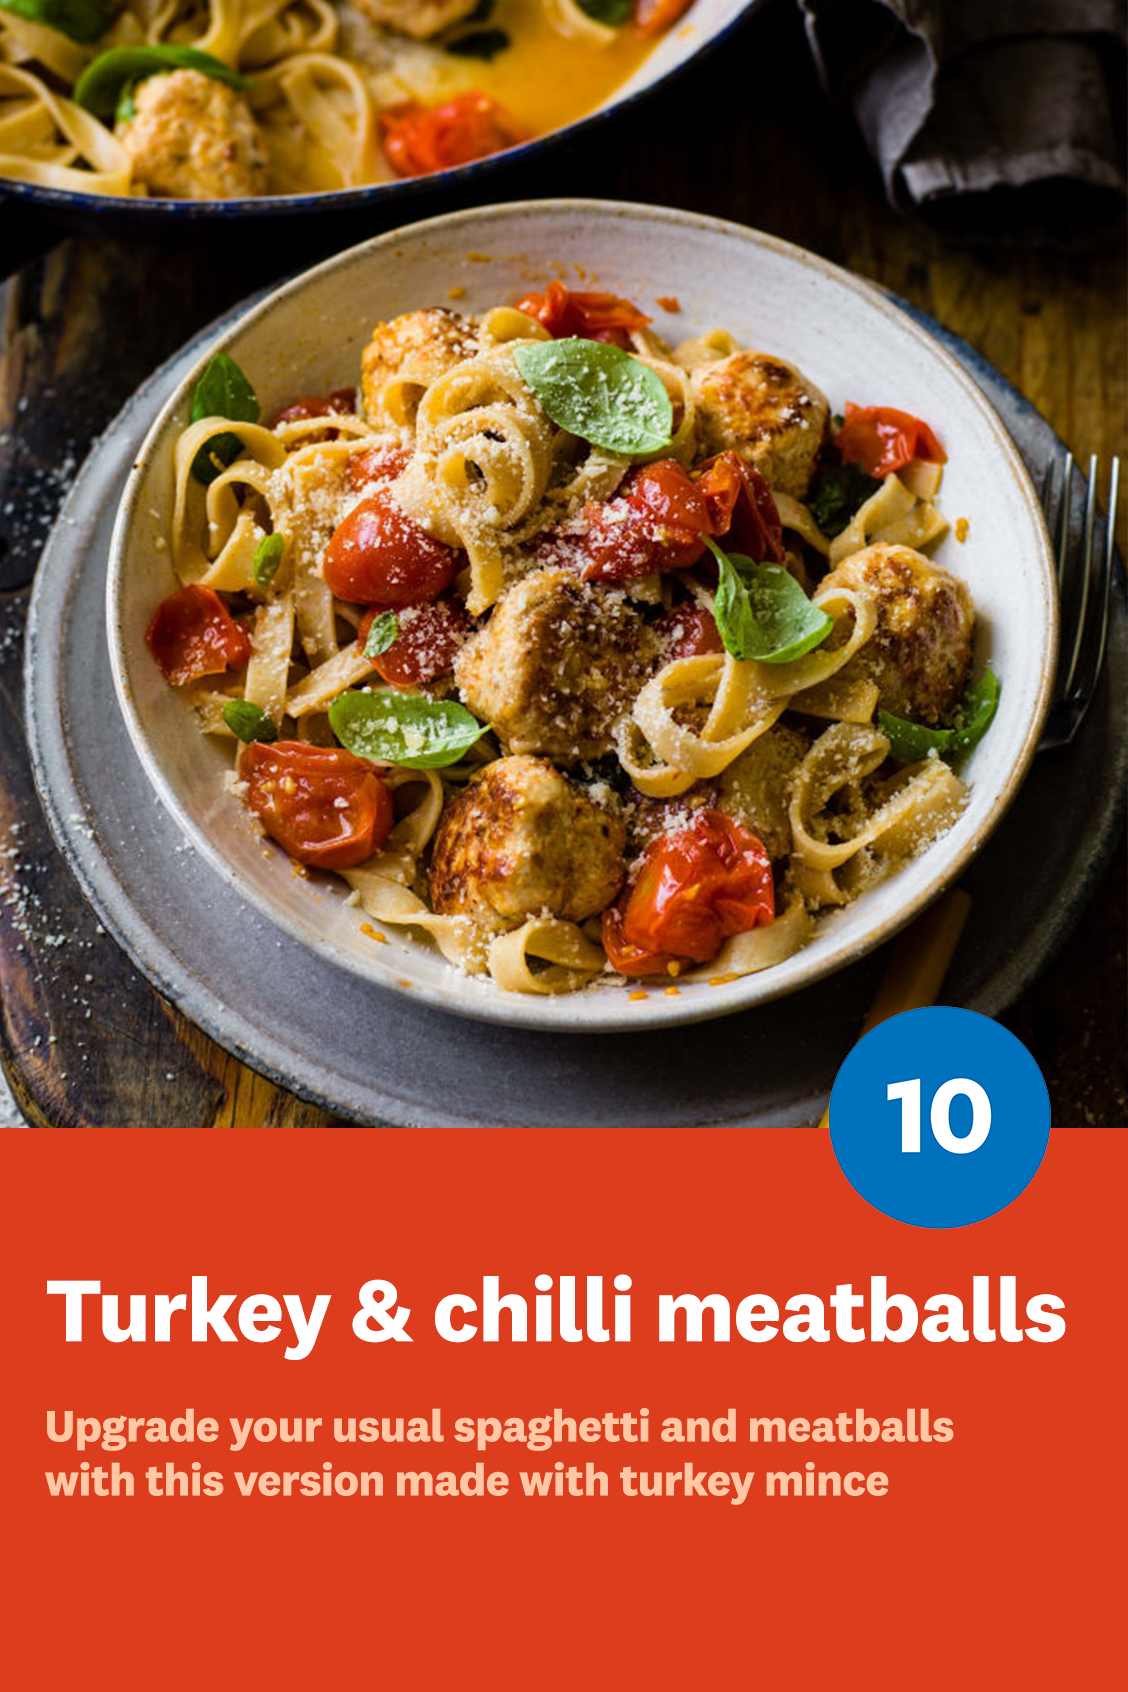 Turkey & chilli meatballs | Recipe (With images) | Recipes